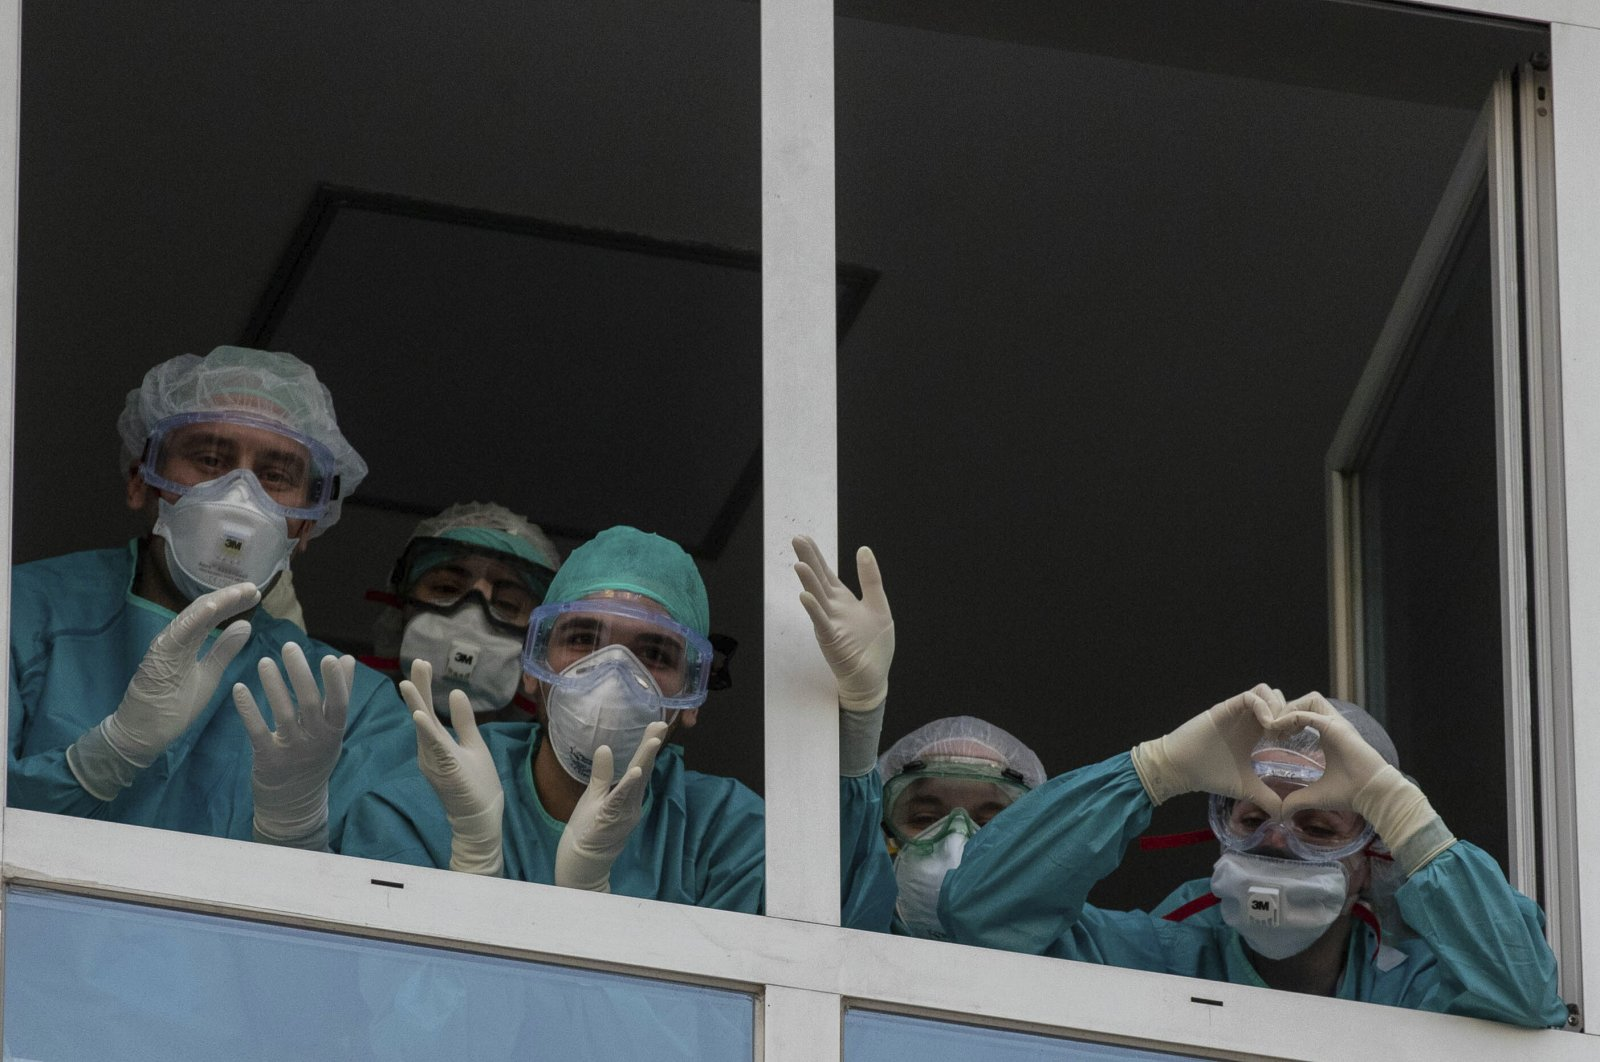 Health workers react as people applaud from their nearby houses in support of the medical staff, Madrid, April 15, 2020. (AP Photo)